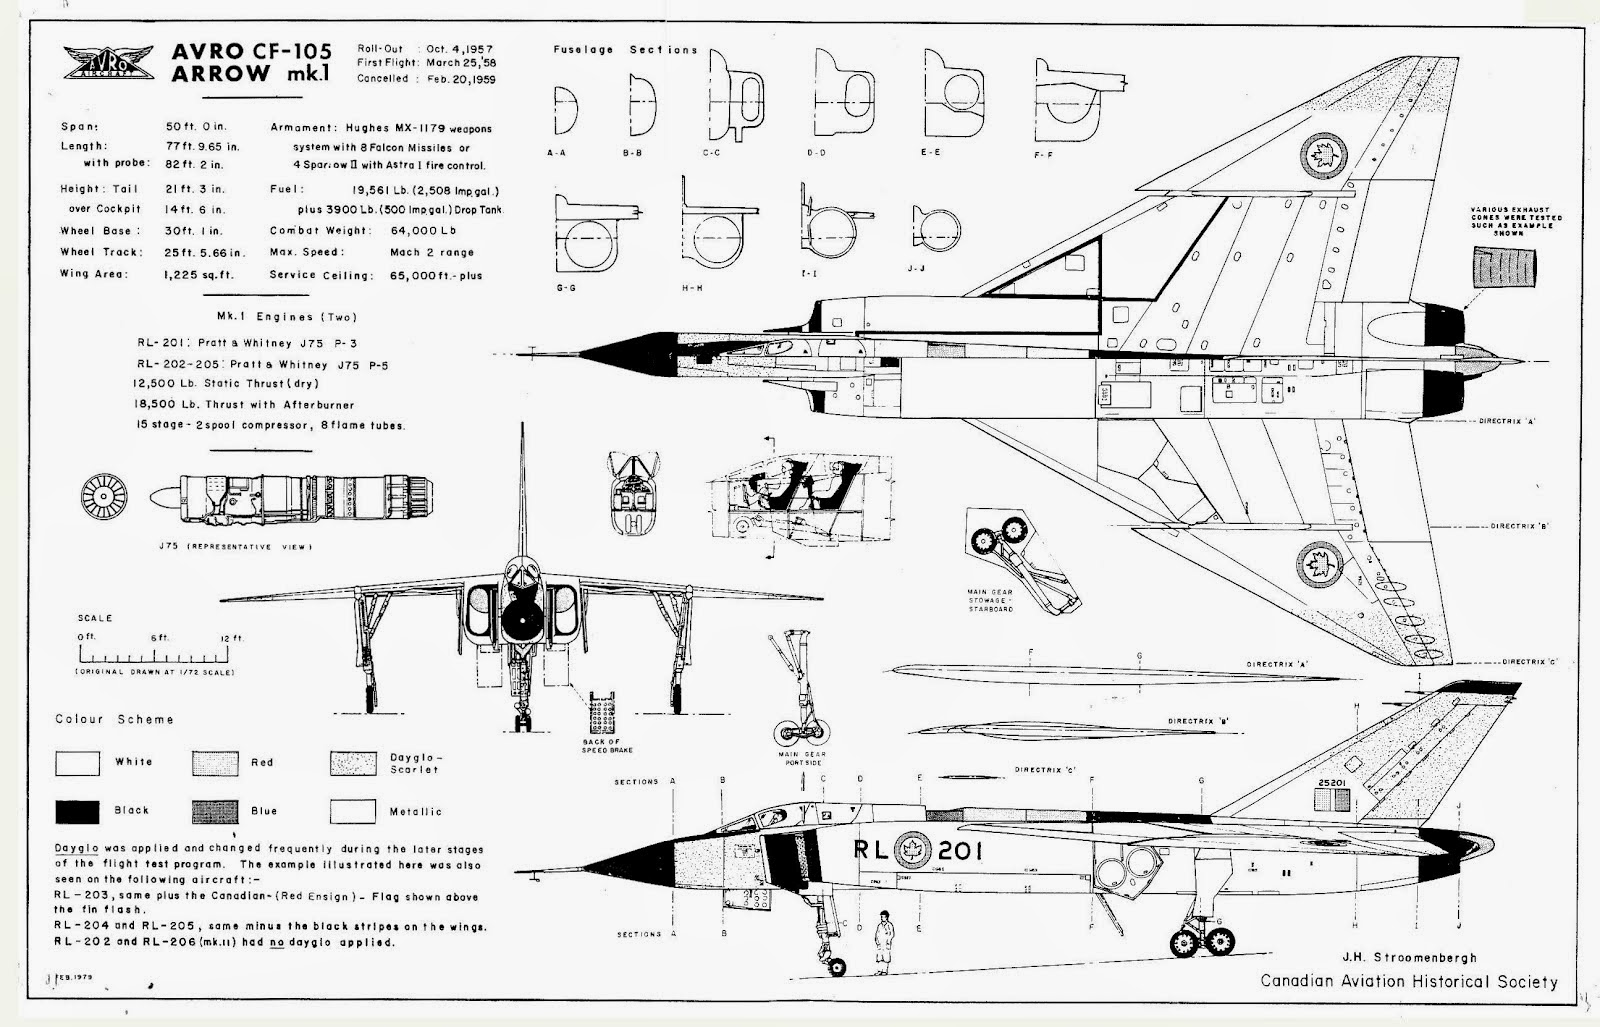 Avro Cf 105 Arrow And Its Variants